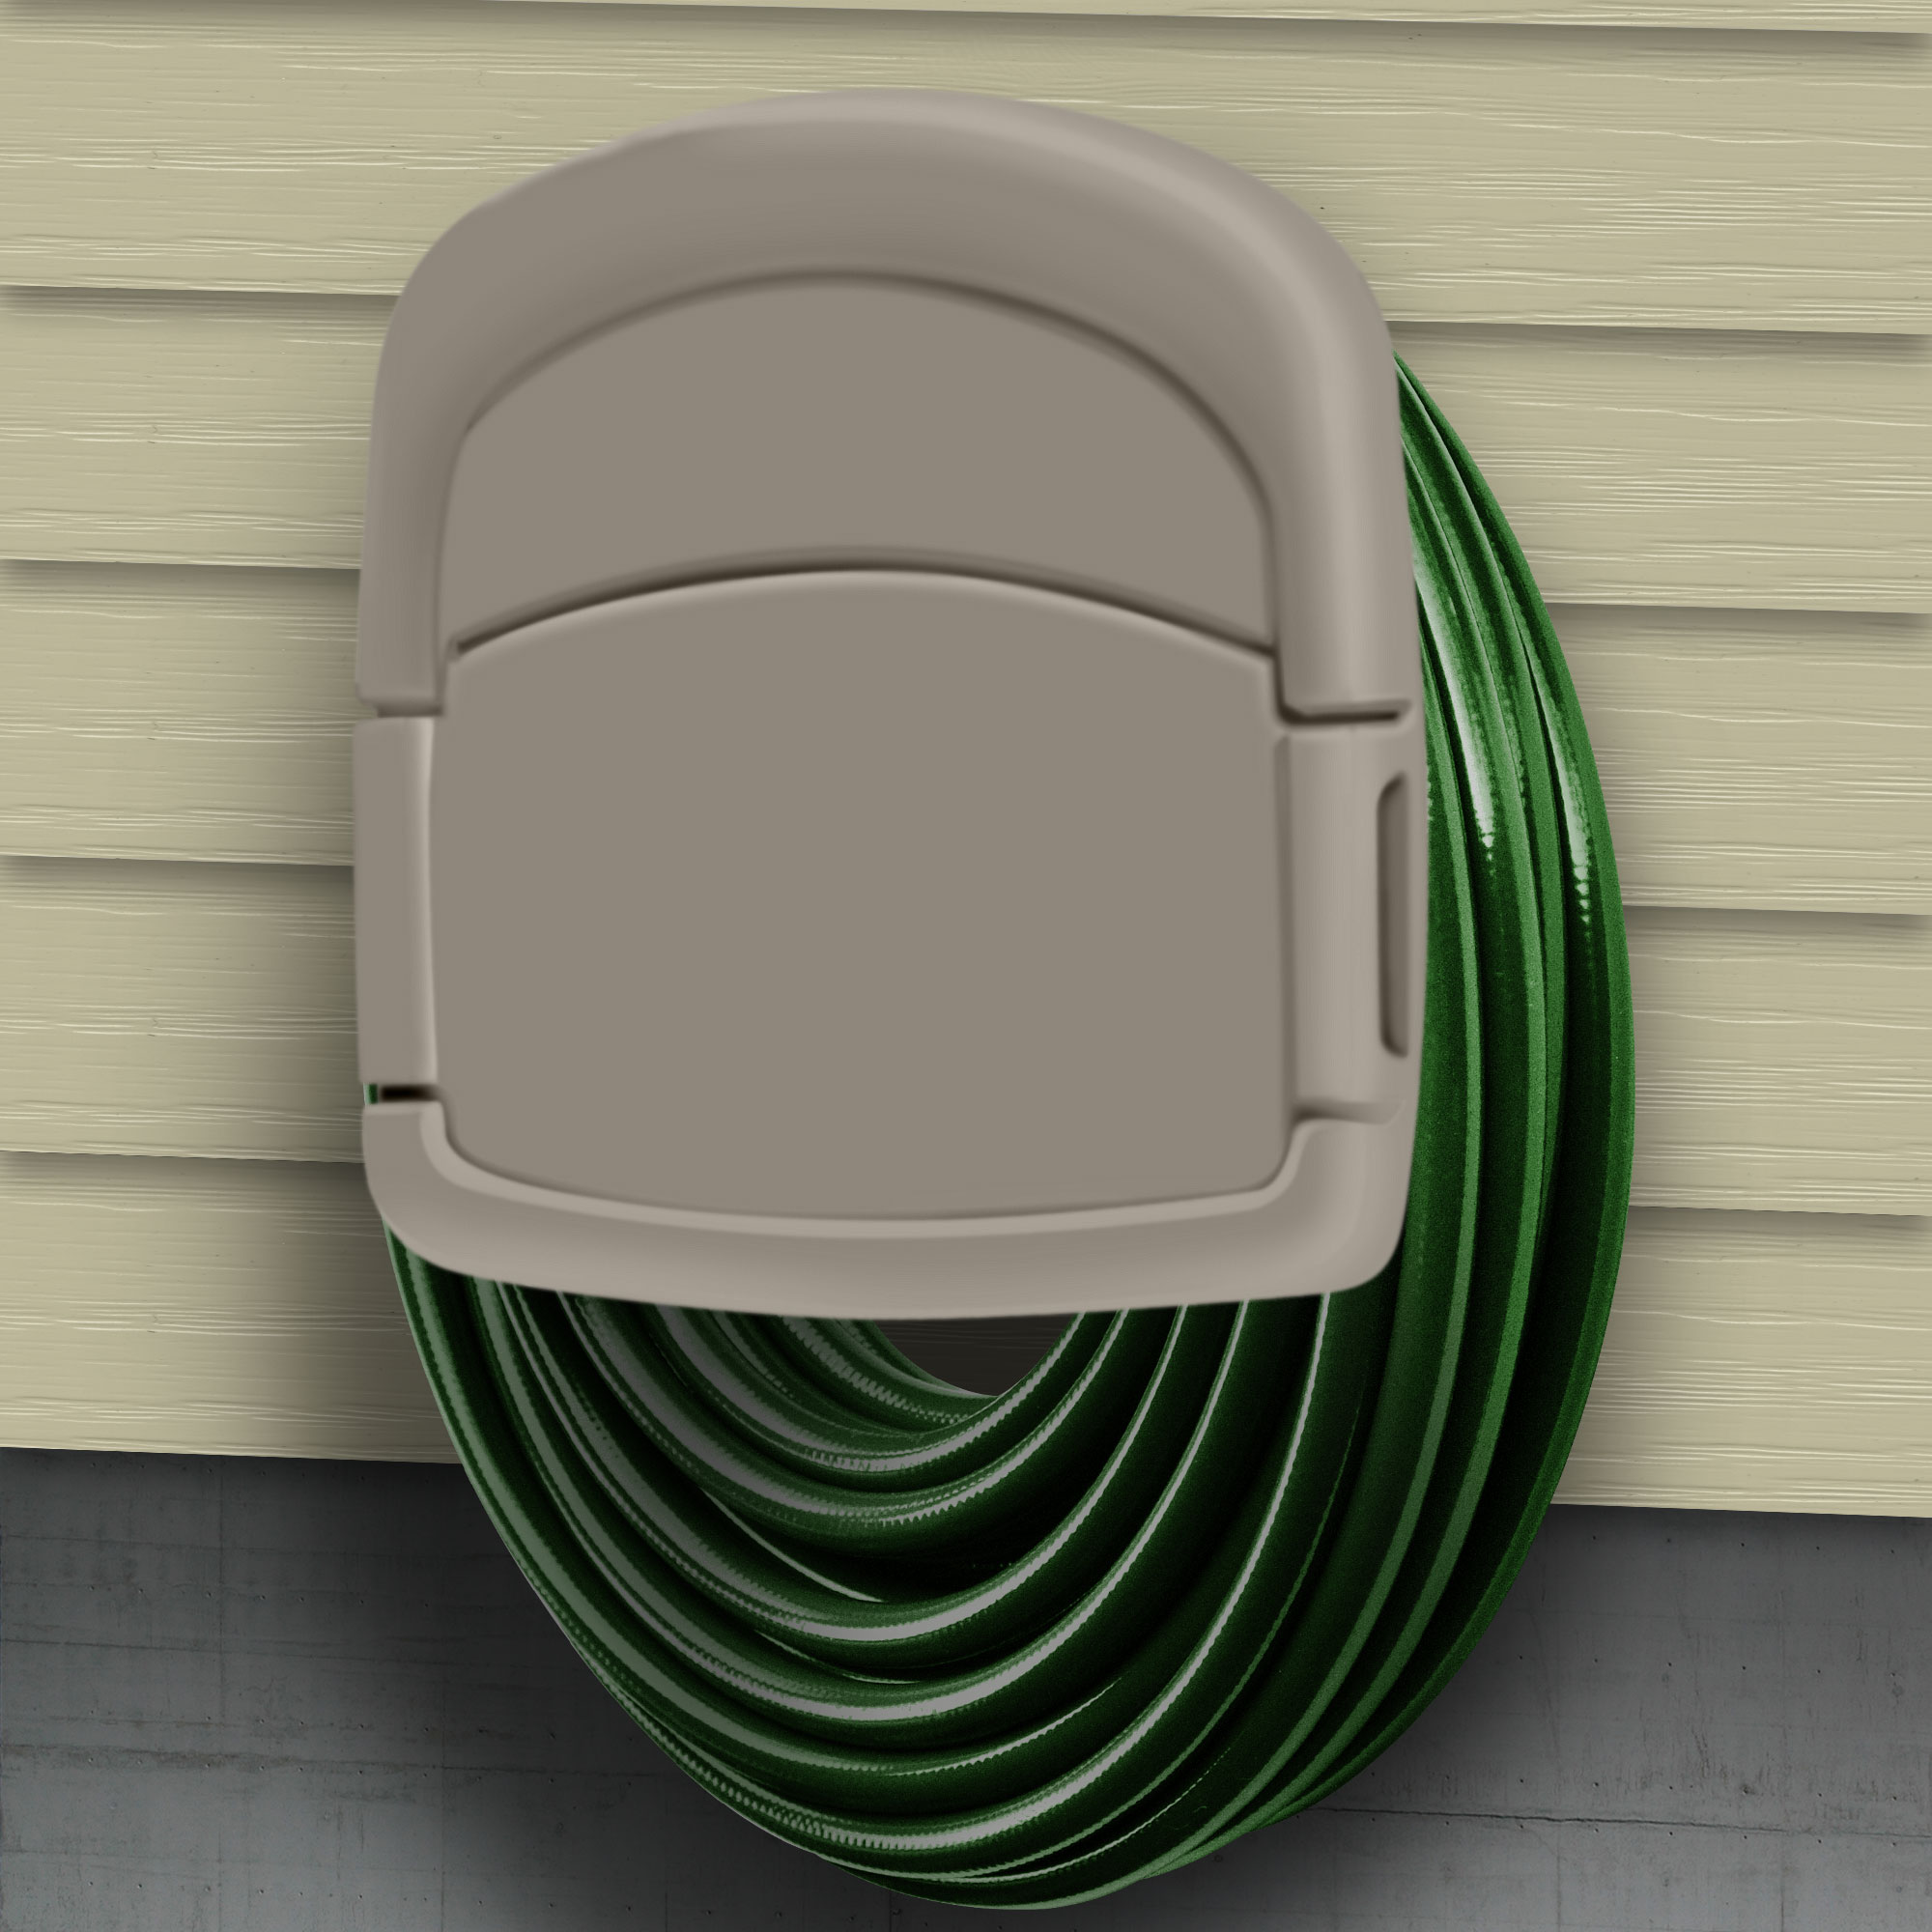 """Wall Mounted Garden Hose Storage Caddy - 150-Foot Capacity for Standard 5/8"""" Garden Hose Outdoor Hanging Organizer Cabinet by Sto-Away"""